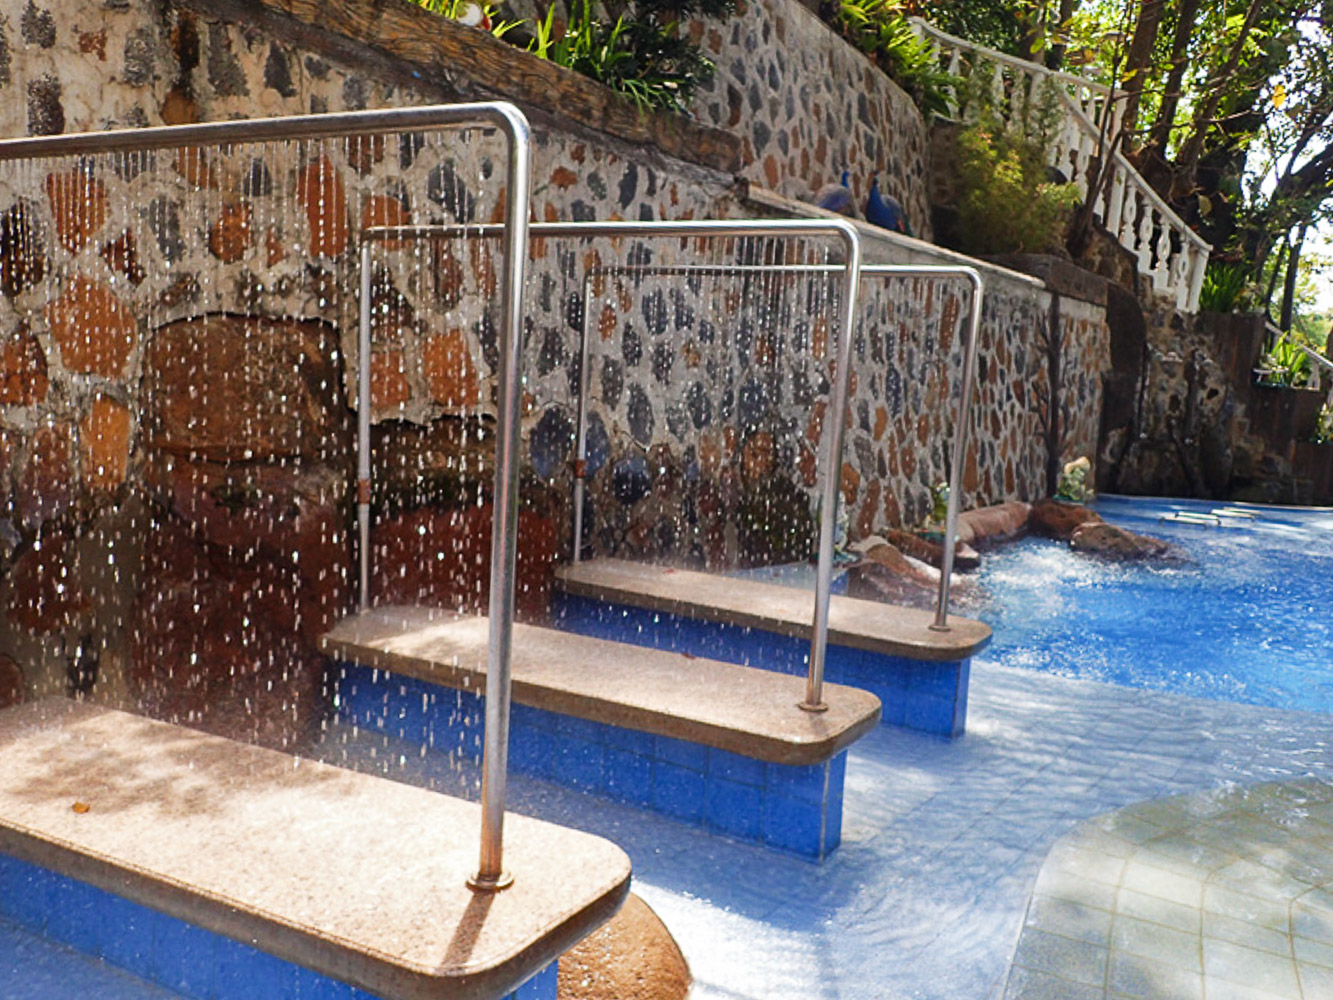 FOR YOUR BACK. On this massage pool, let the water fall on your back to wash away the stress. Or simply enjoy a rainshower on your body.